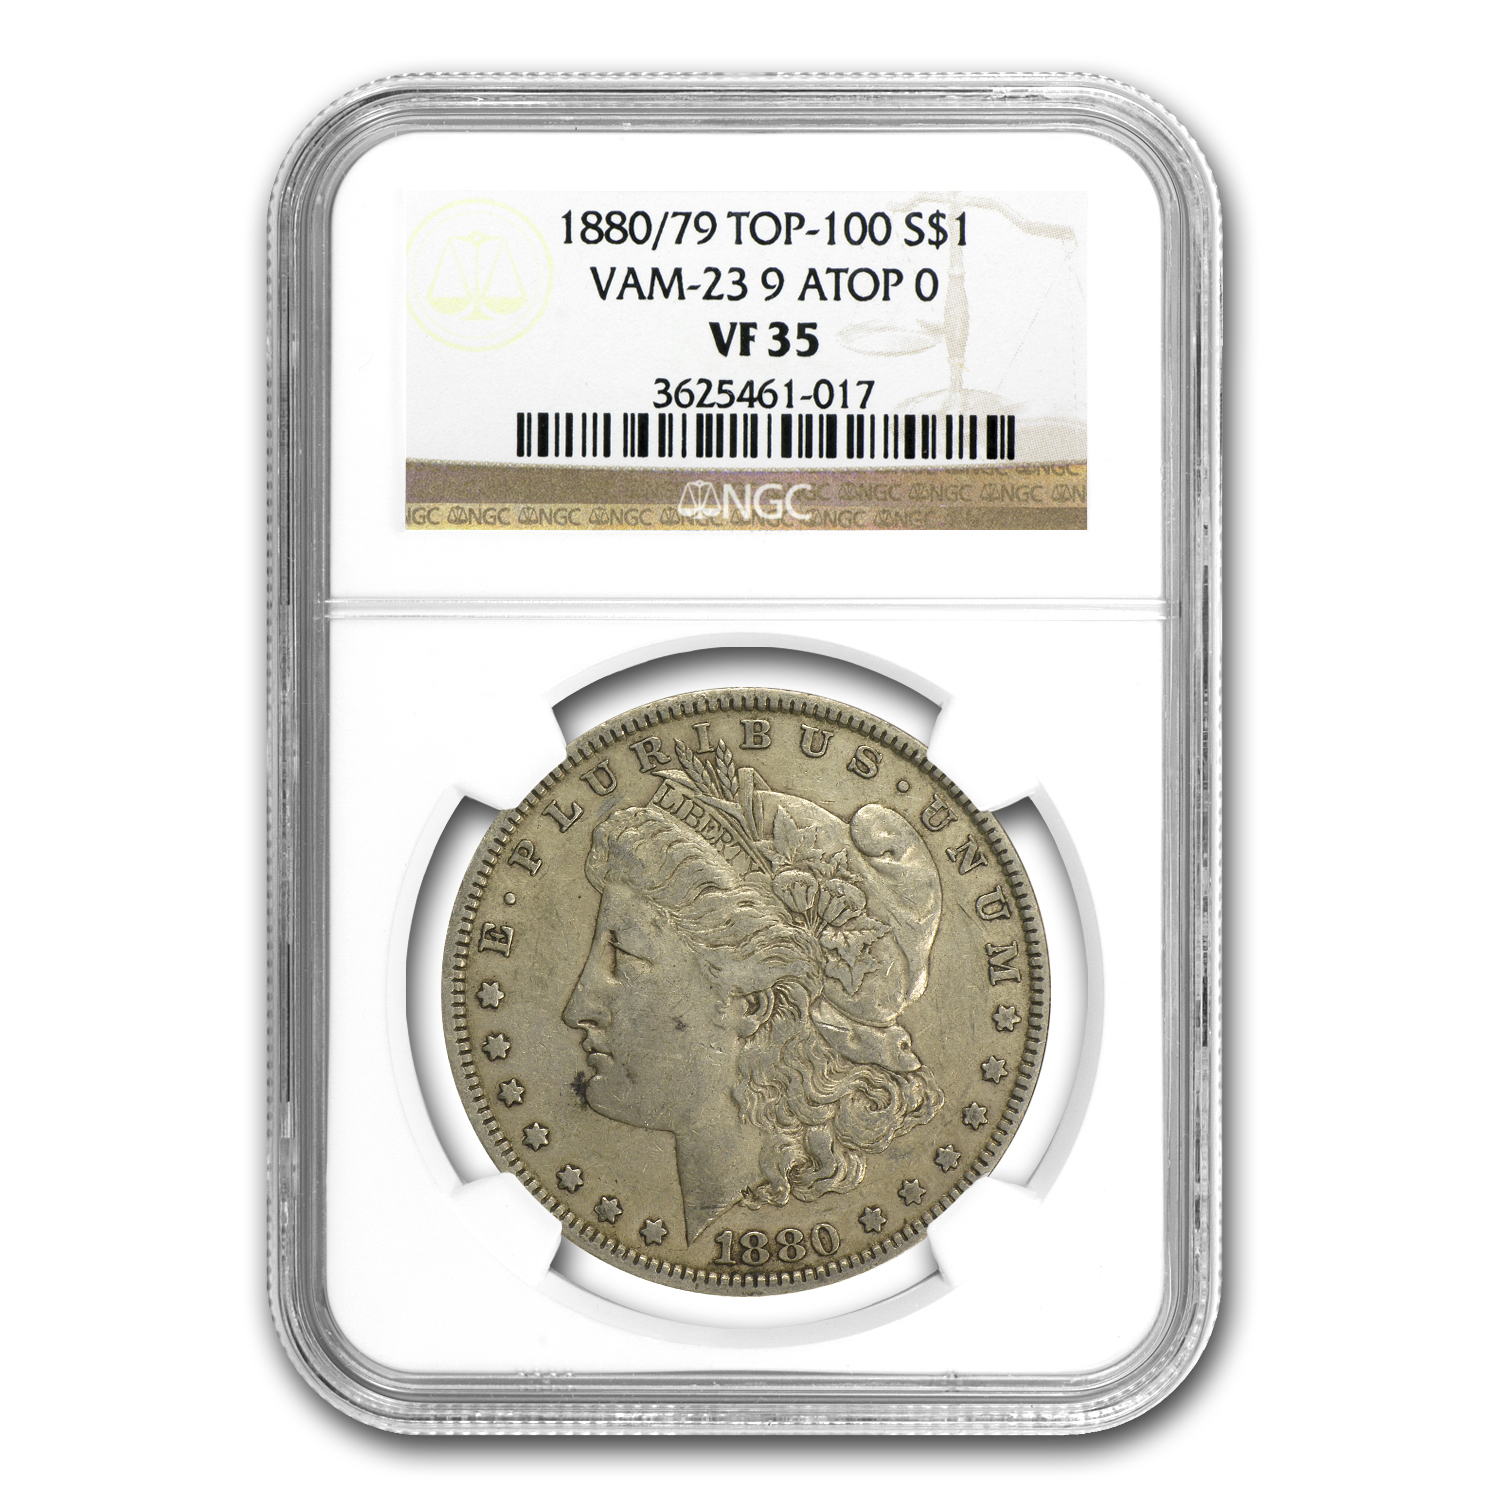 1880/79 Morgan Dollar VF-35 NGC (VAM-23, 80/79 Overdate, Top-100)